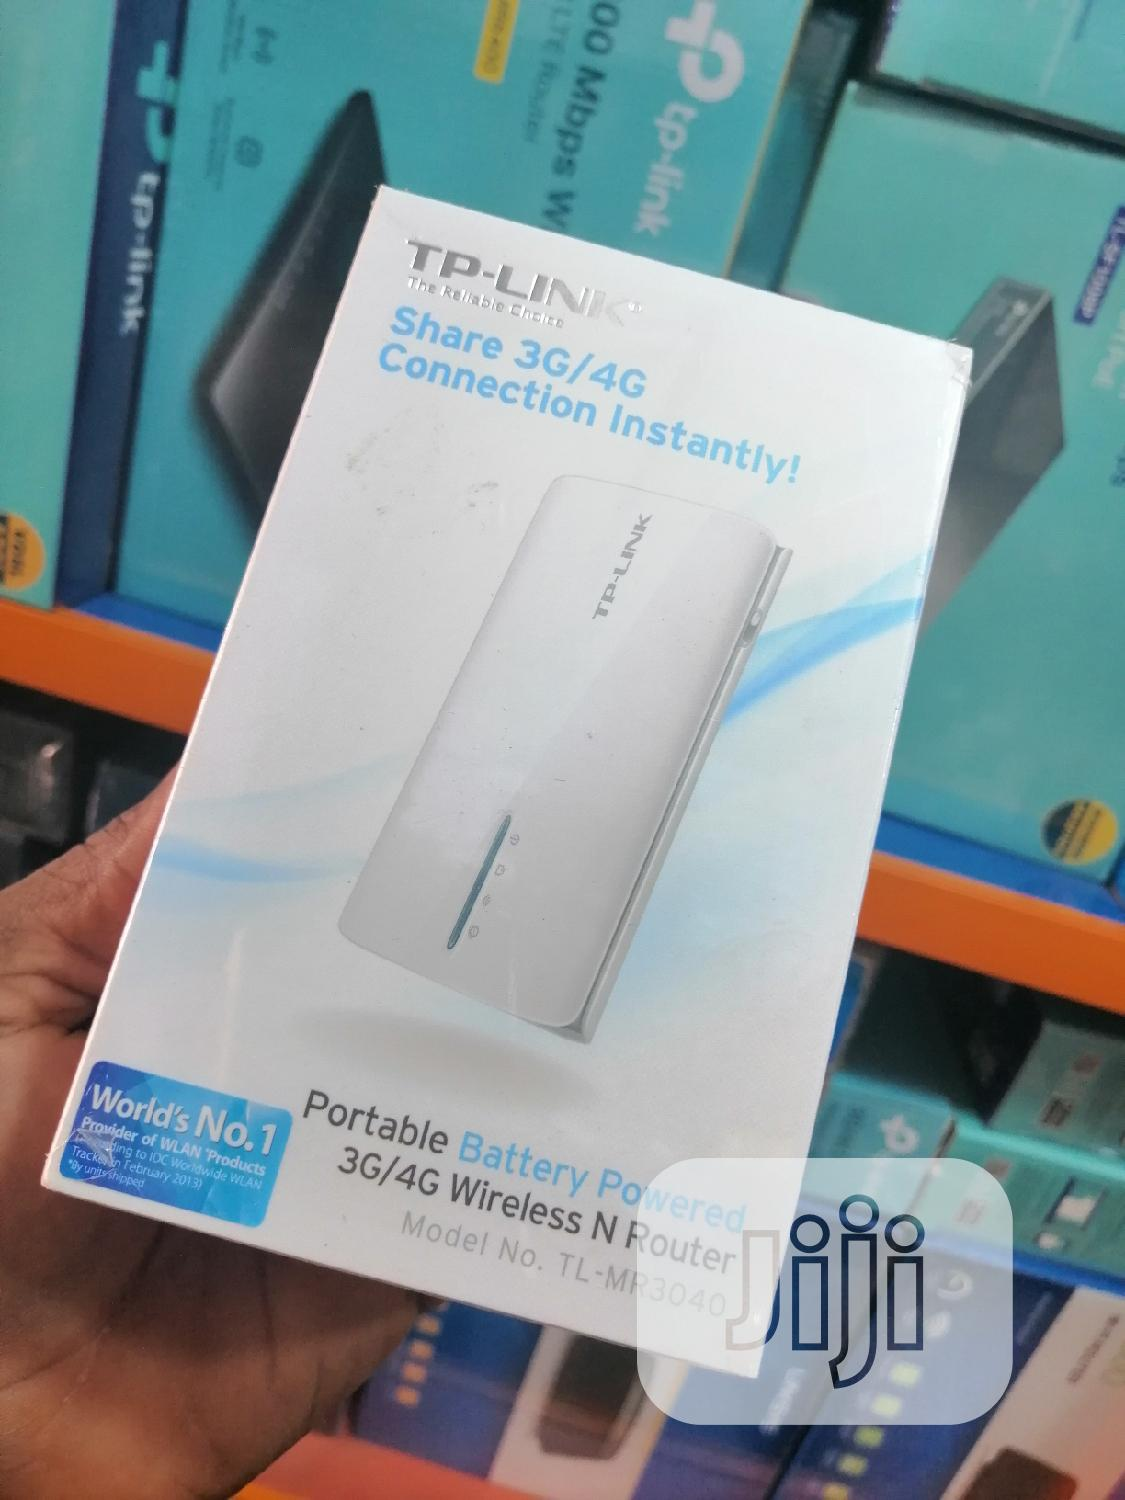 Tp-link Portable 3G/4G Wireless N Router TL-MR3040